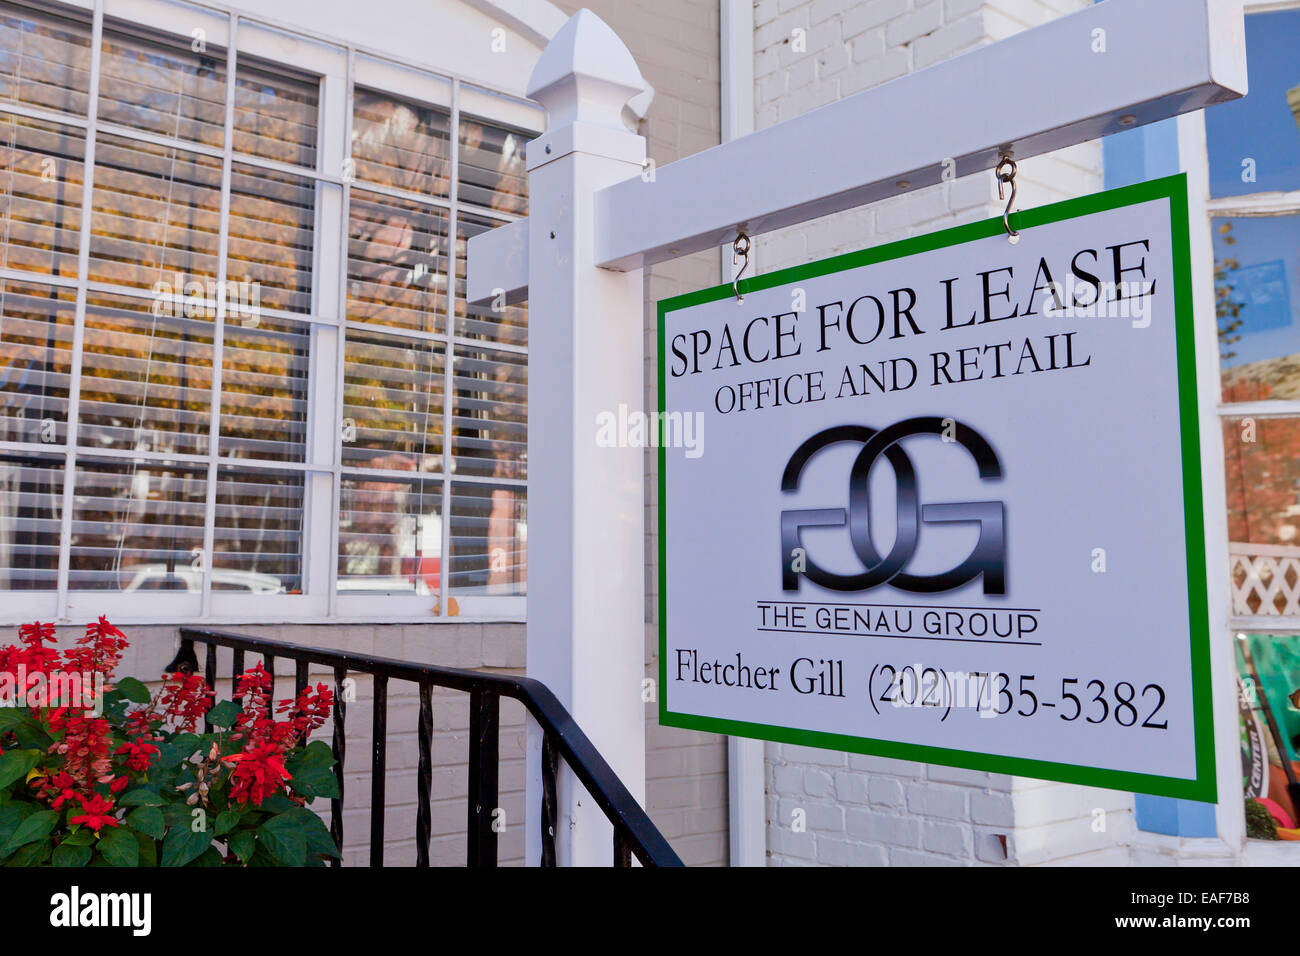 Commercial space for lease sign - Washington, DC USA - Stock Image